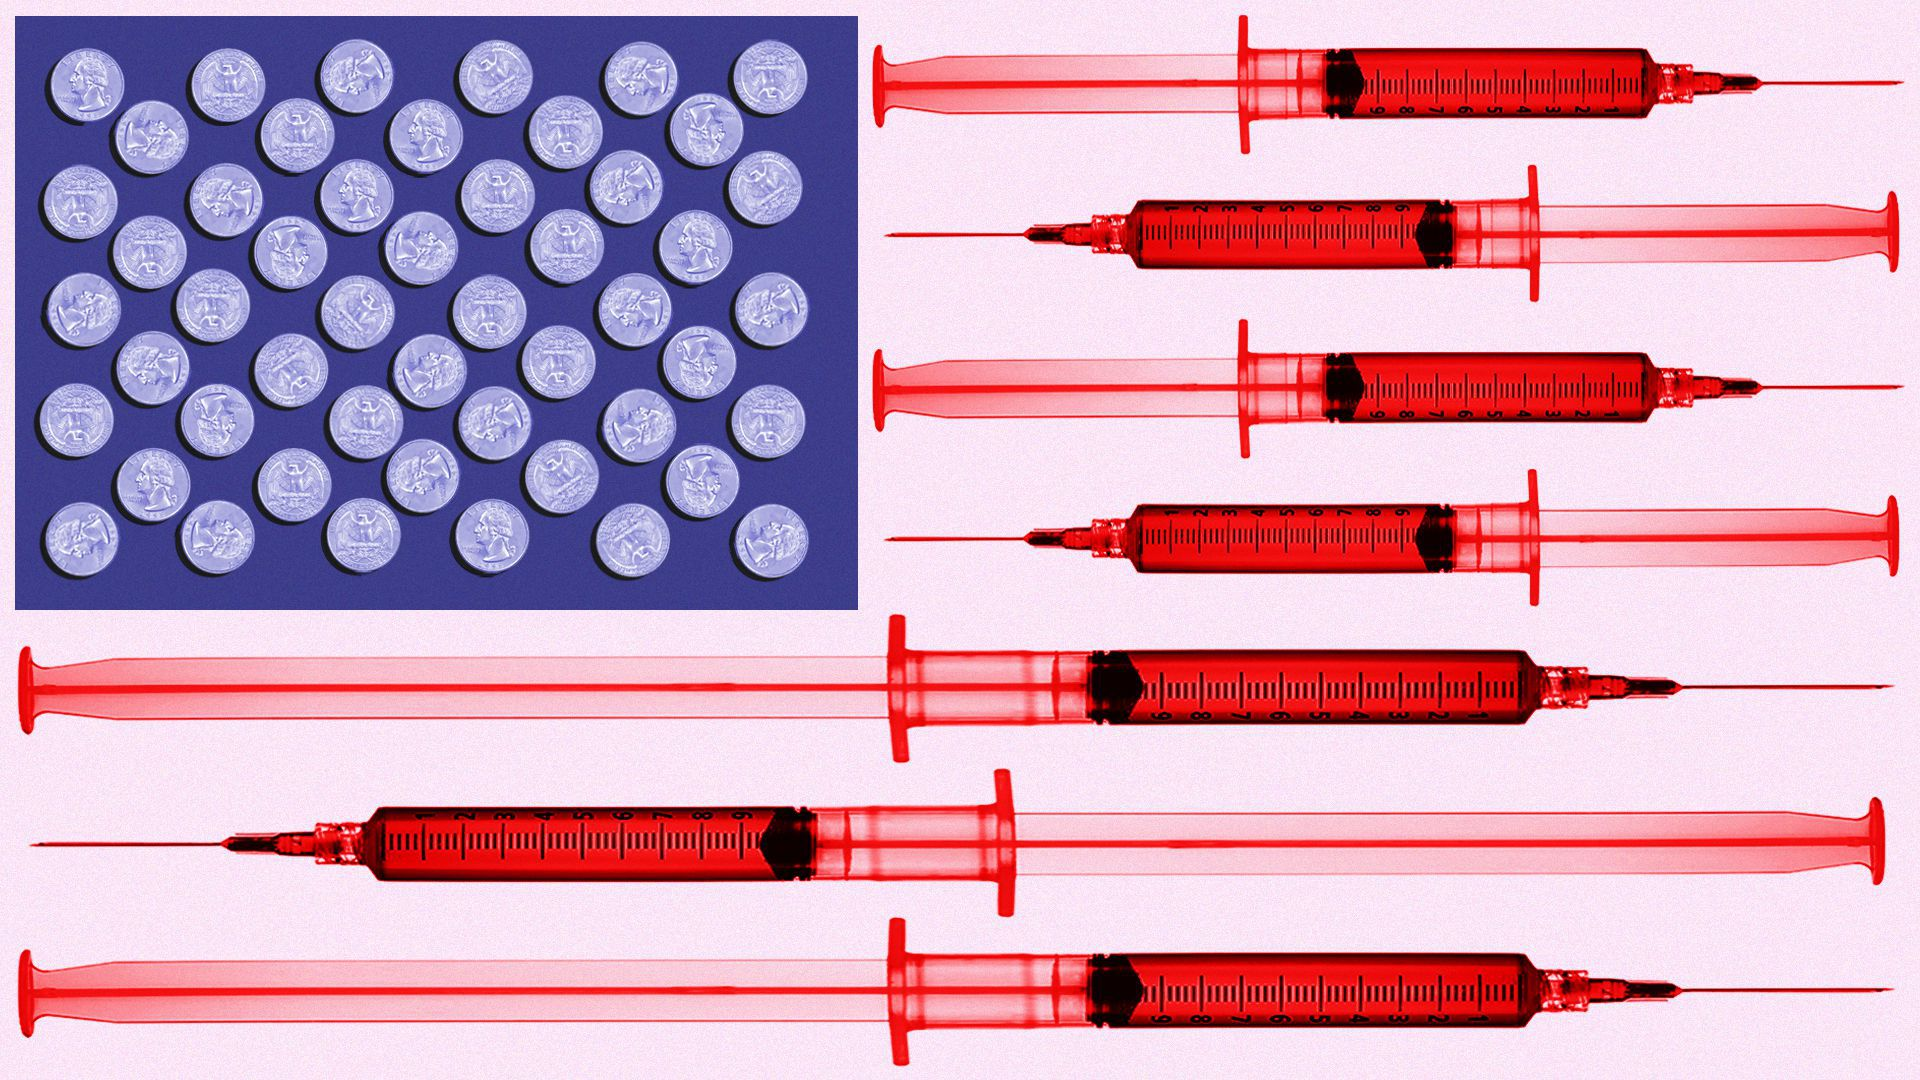 Illustration of the U.S. map made up of vaccination syringes and quarters